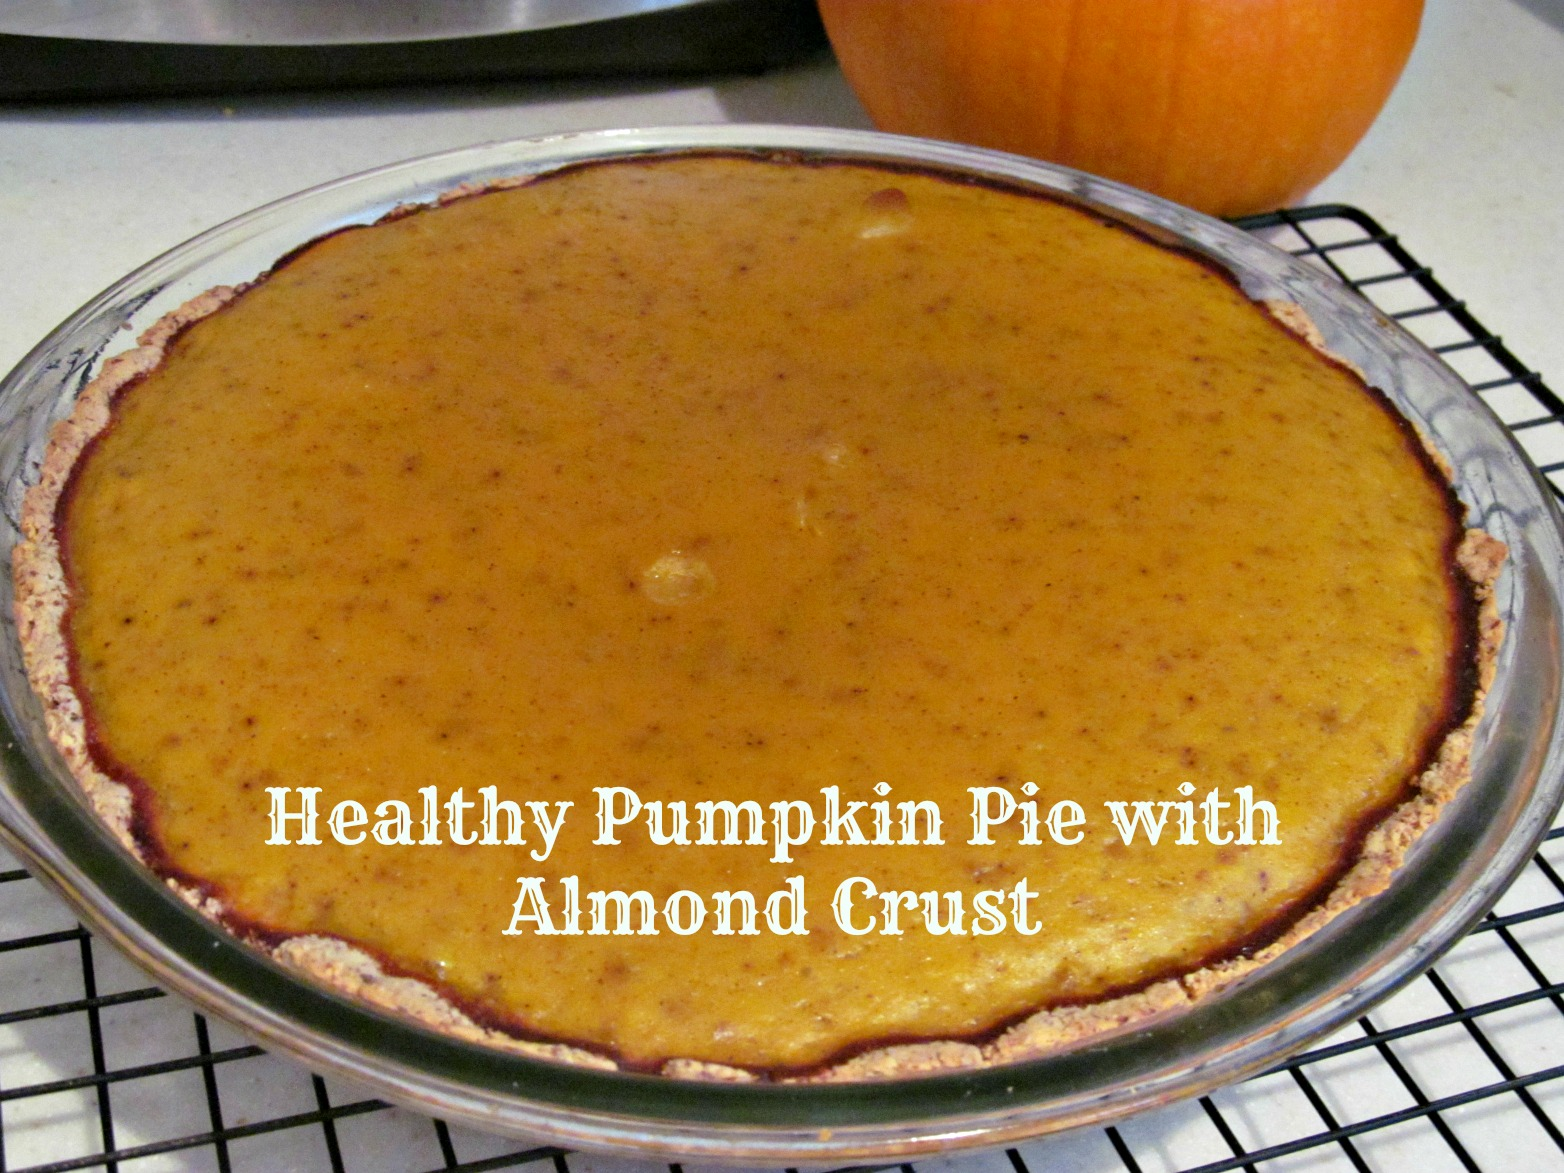 Healthy Pumpkin Pie with Almond Crust – The Chocolate Bottle